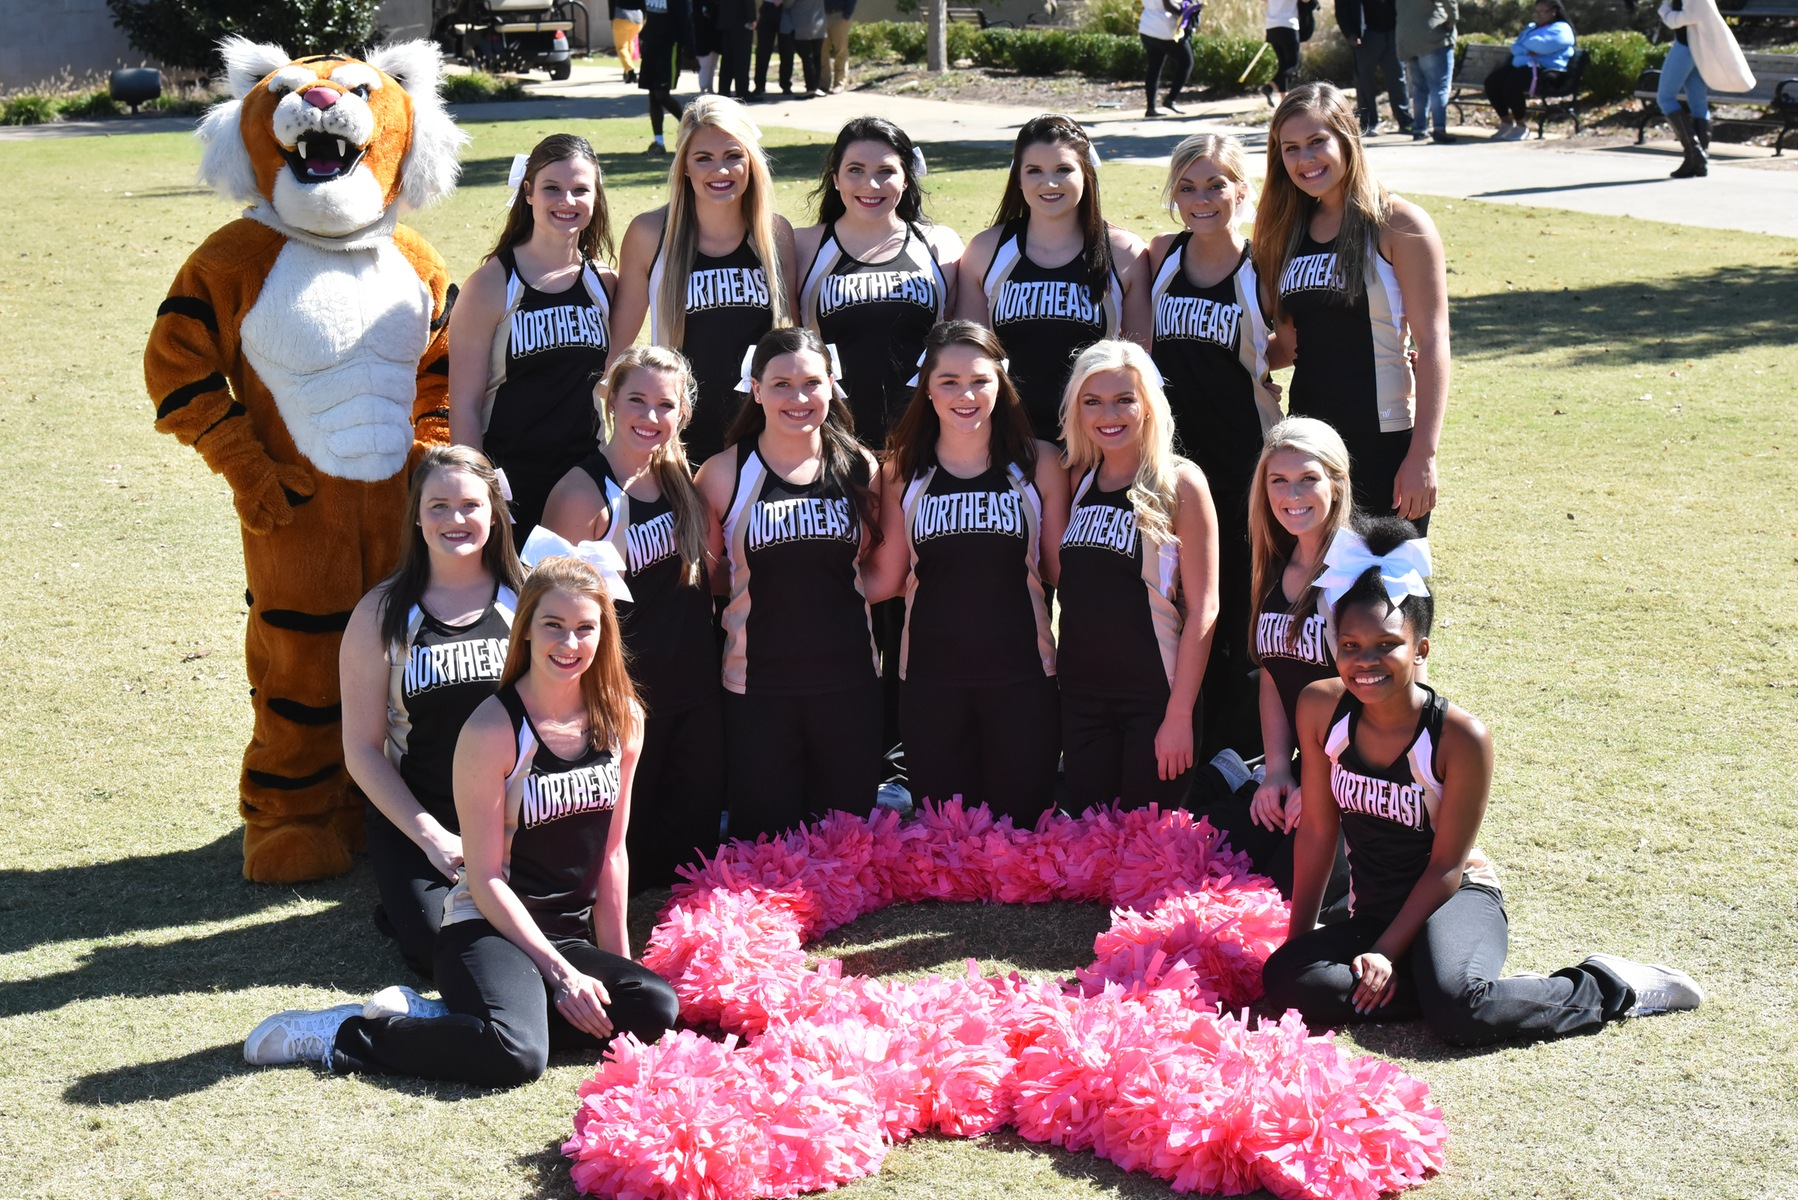 (PHOTO: Michael H. Miller/Northeast Public Information): Northeast Mississippi Community College's football team and cheerleaders (pictured) will don pink attire for its annual Breast Cancer Awareness Night on Thursday, October 11 against Jones College. Kickoff is scheduled for 6:30 p.m. at Tiger Stadium. It is the non-division finale for both teams.